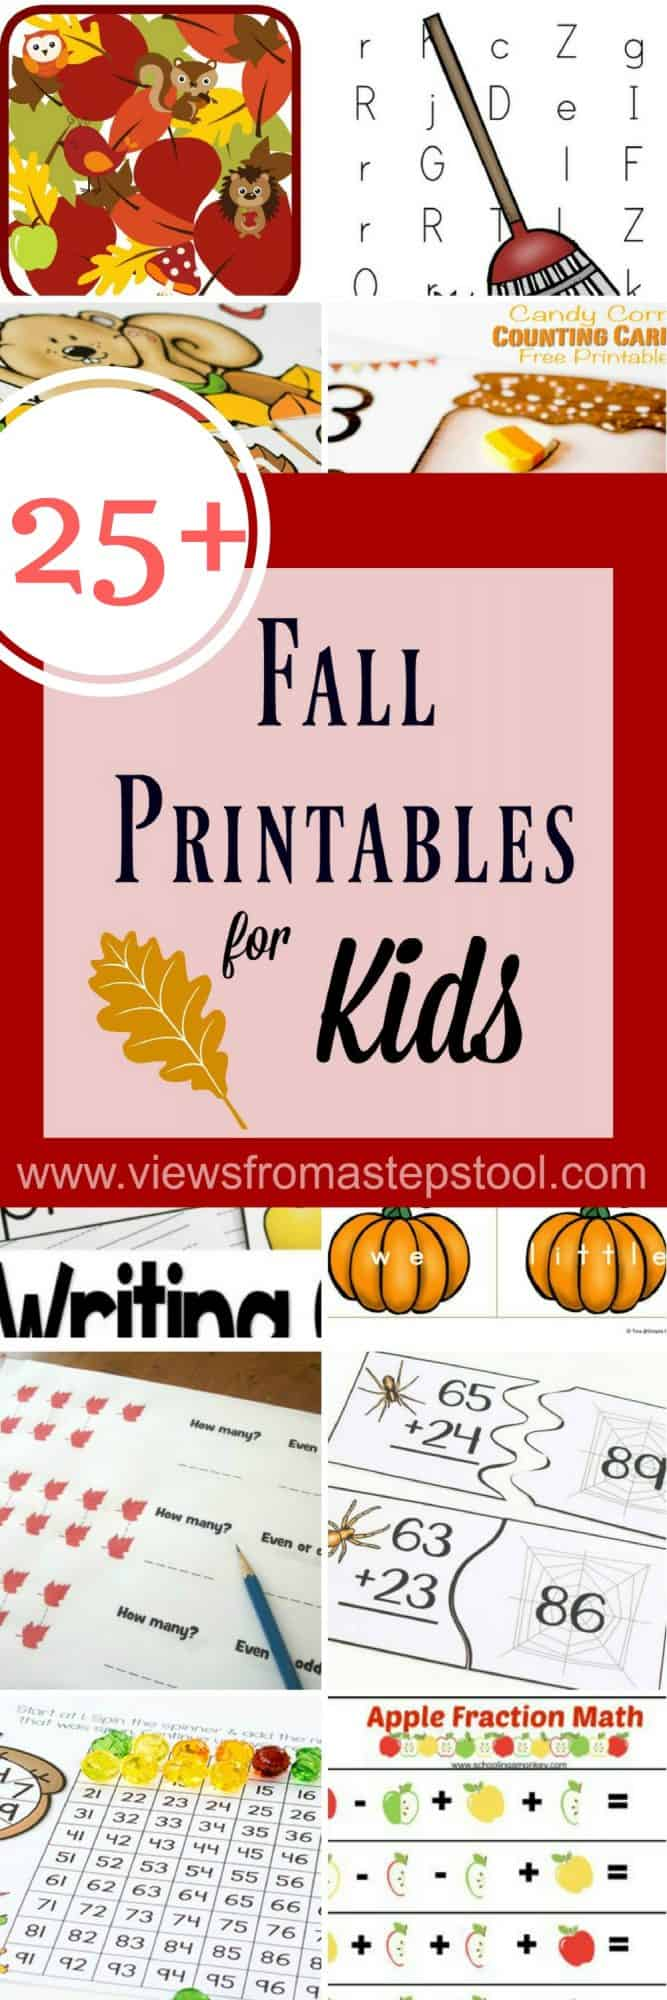 Ultimate List of Fall Printables for Kids